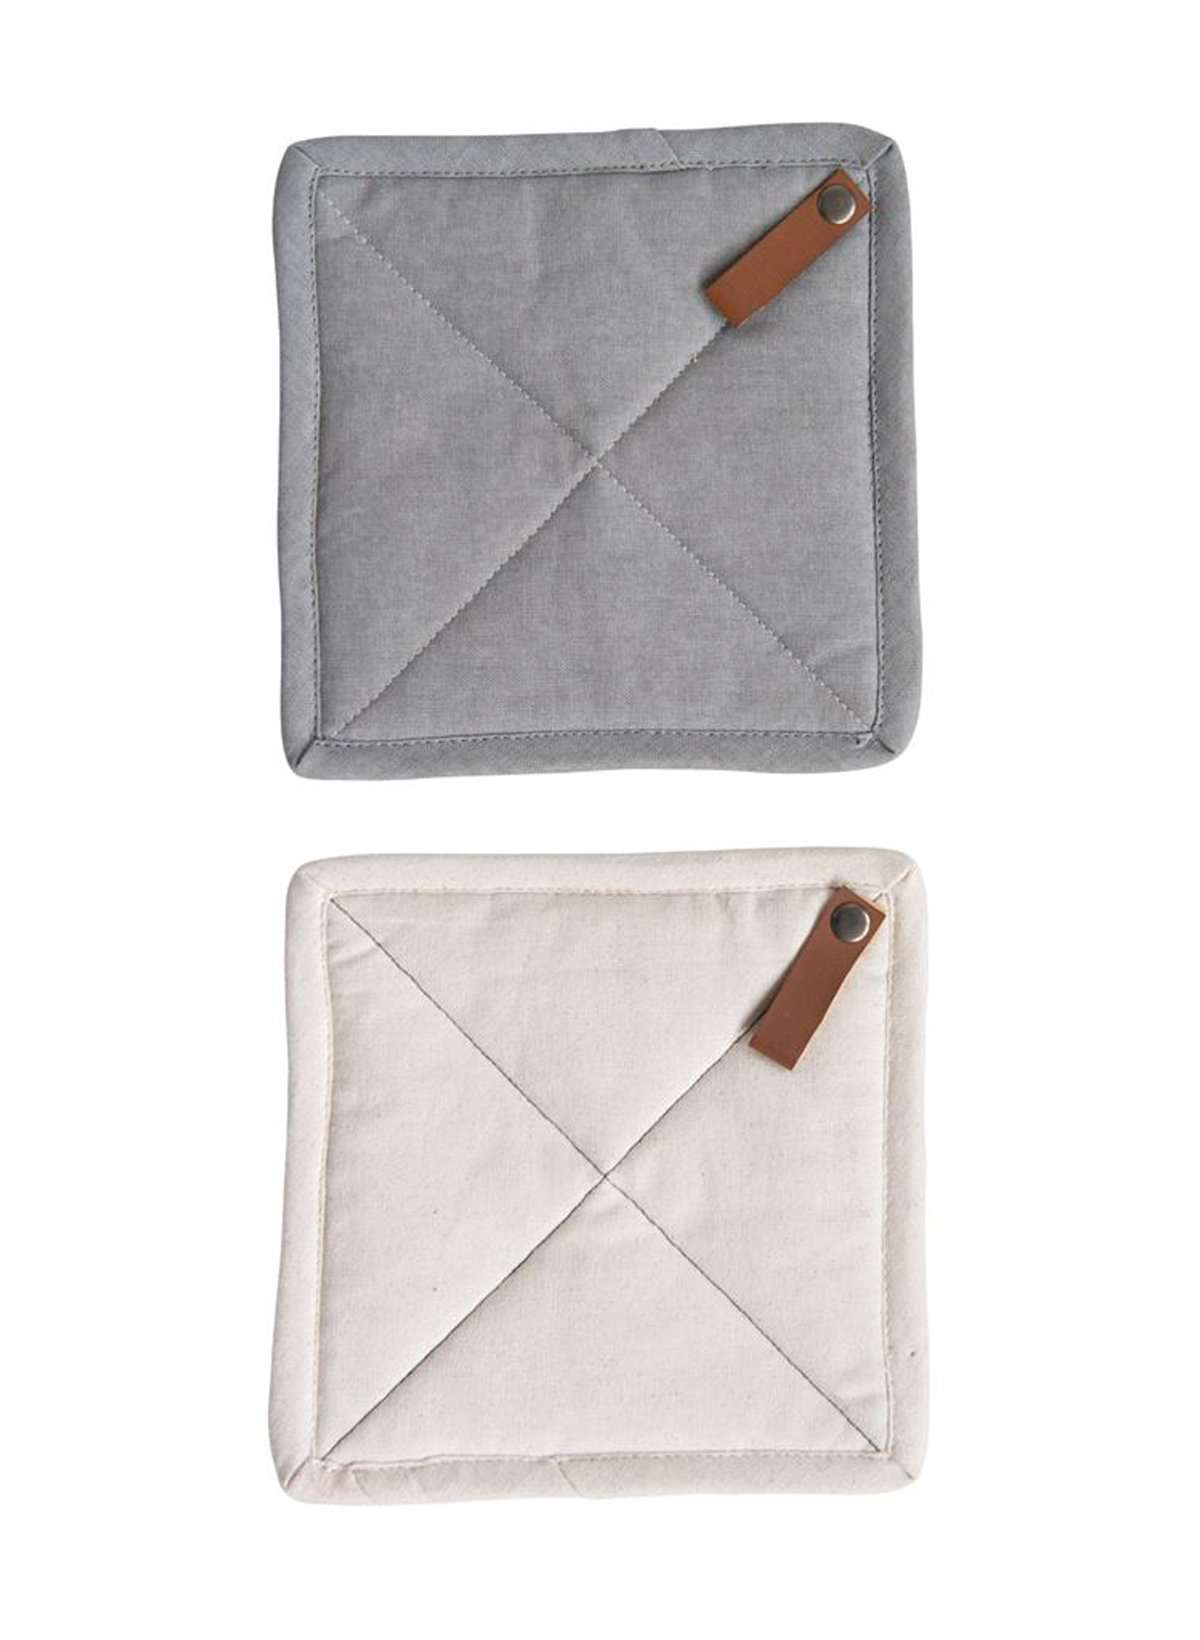 gray and tan quilted pot holder set with leather loop tab